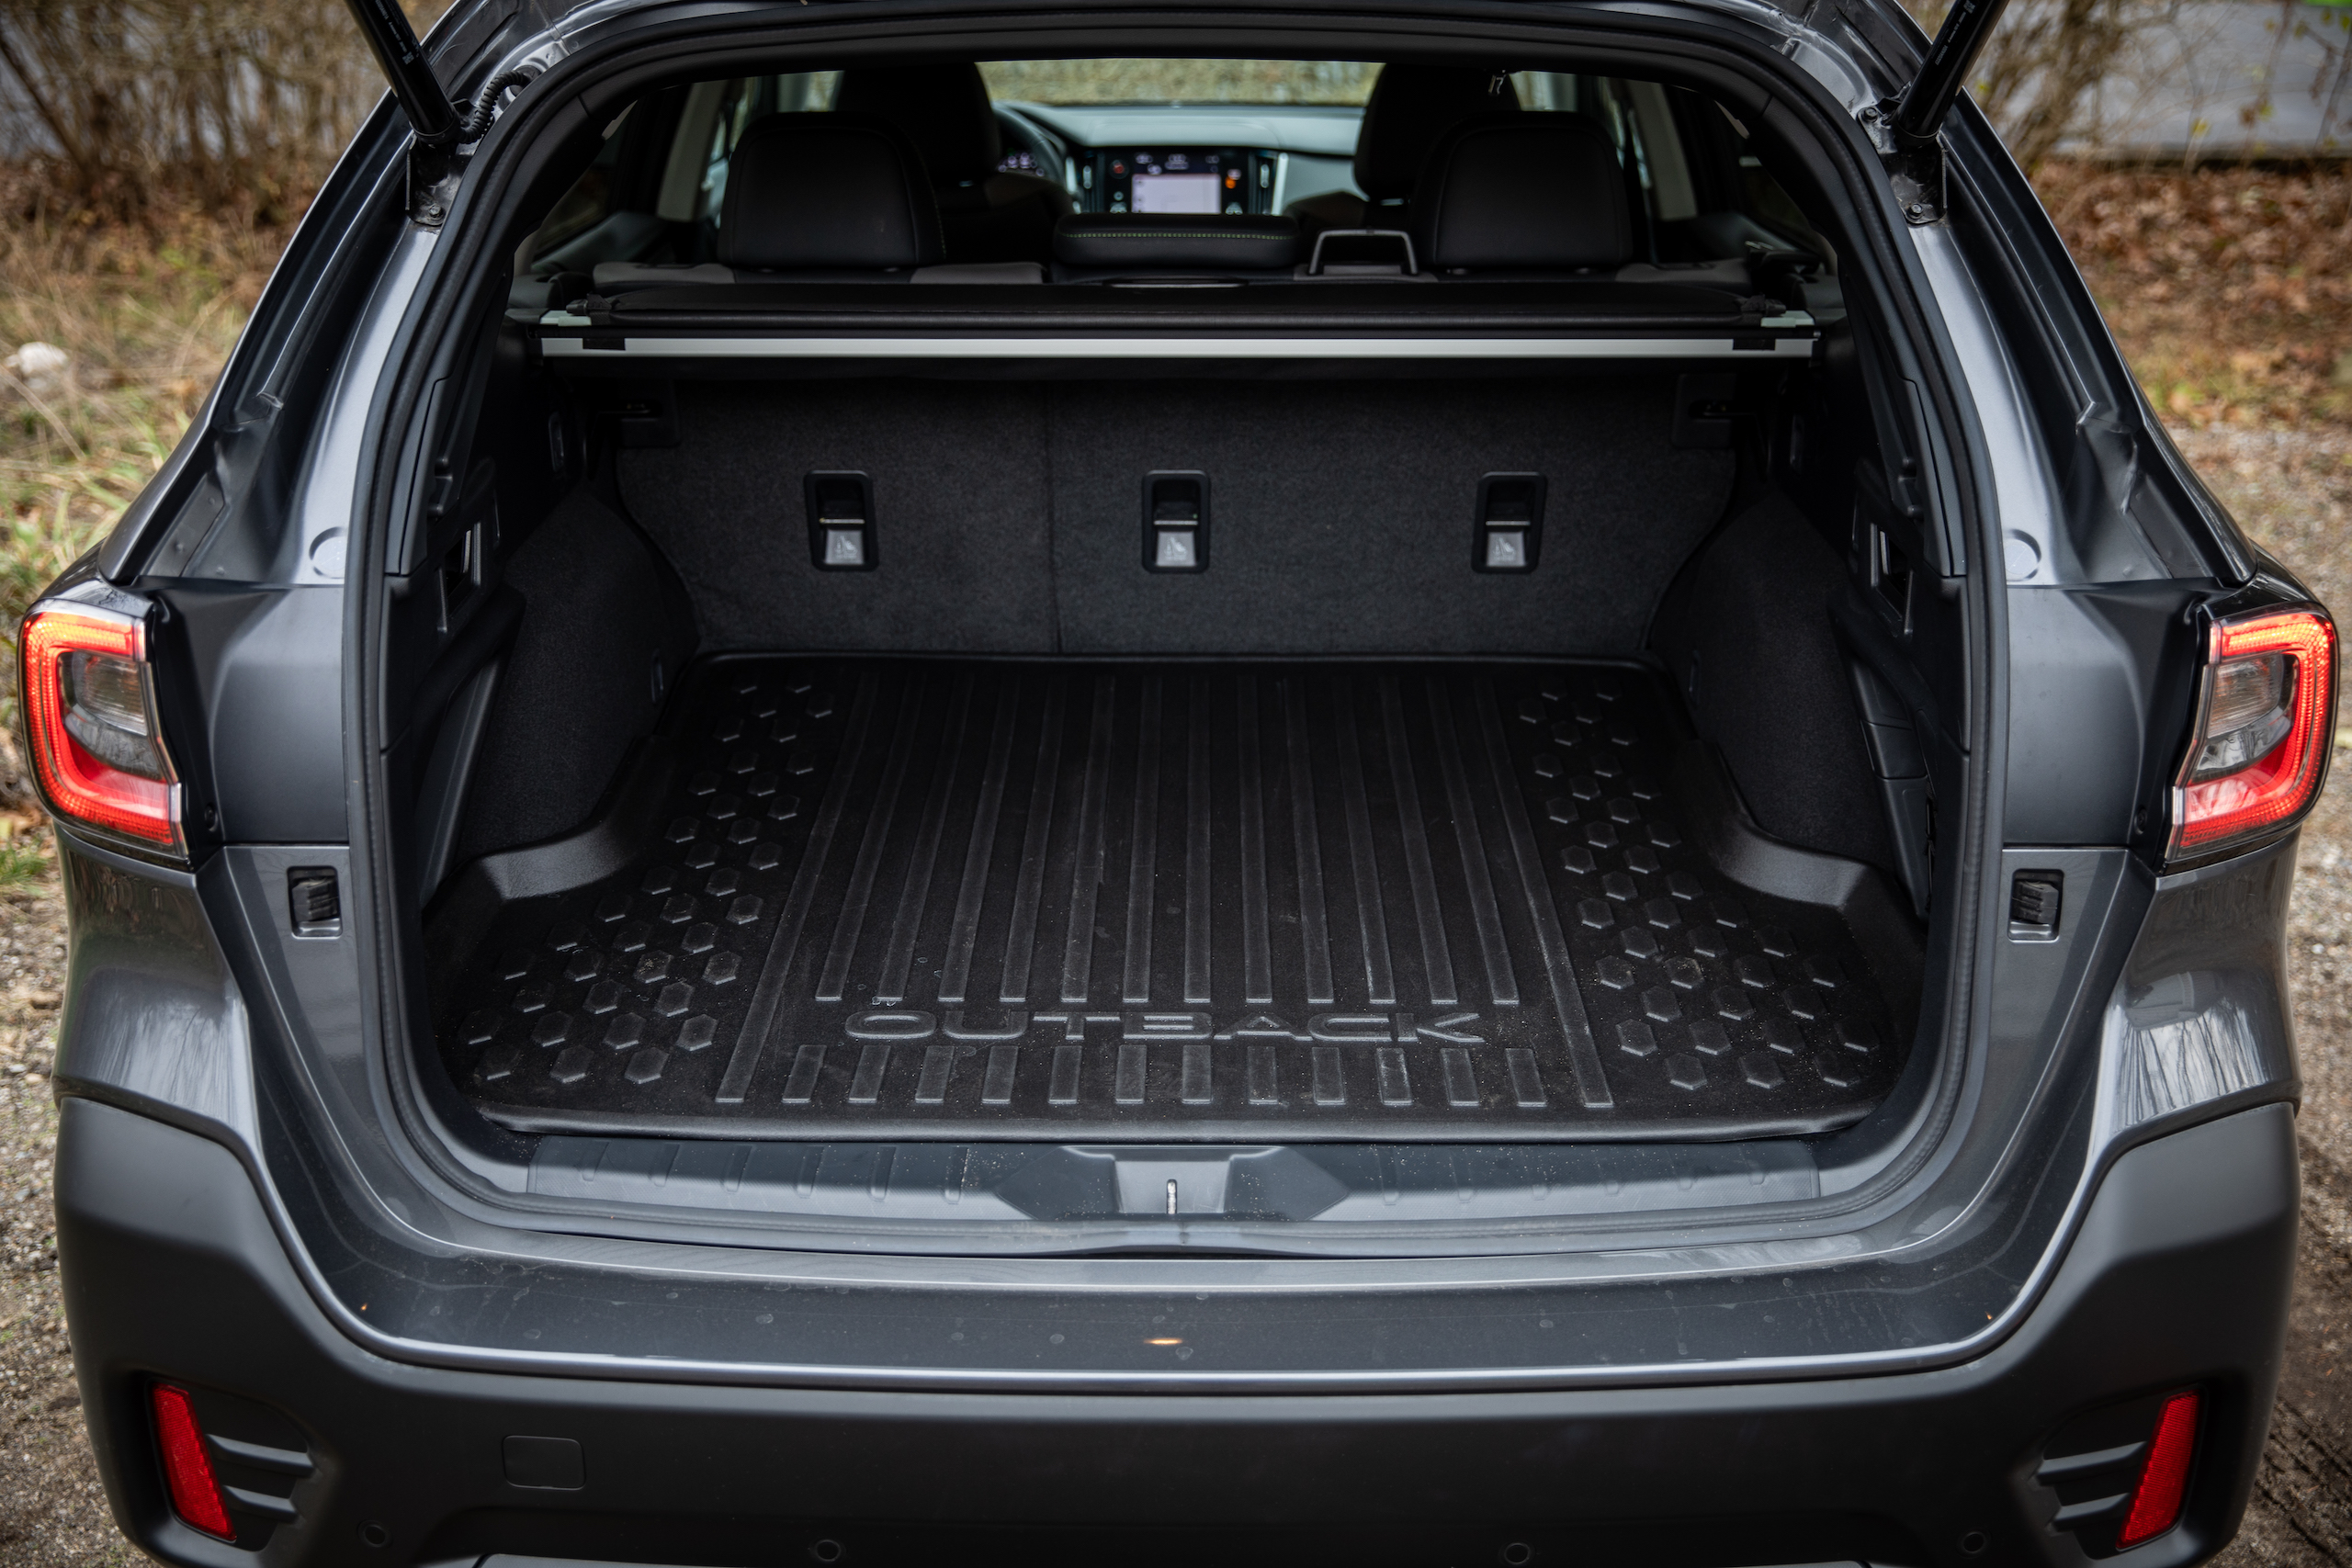 Subaru Outback rear trunk cargo area